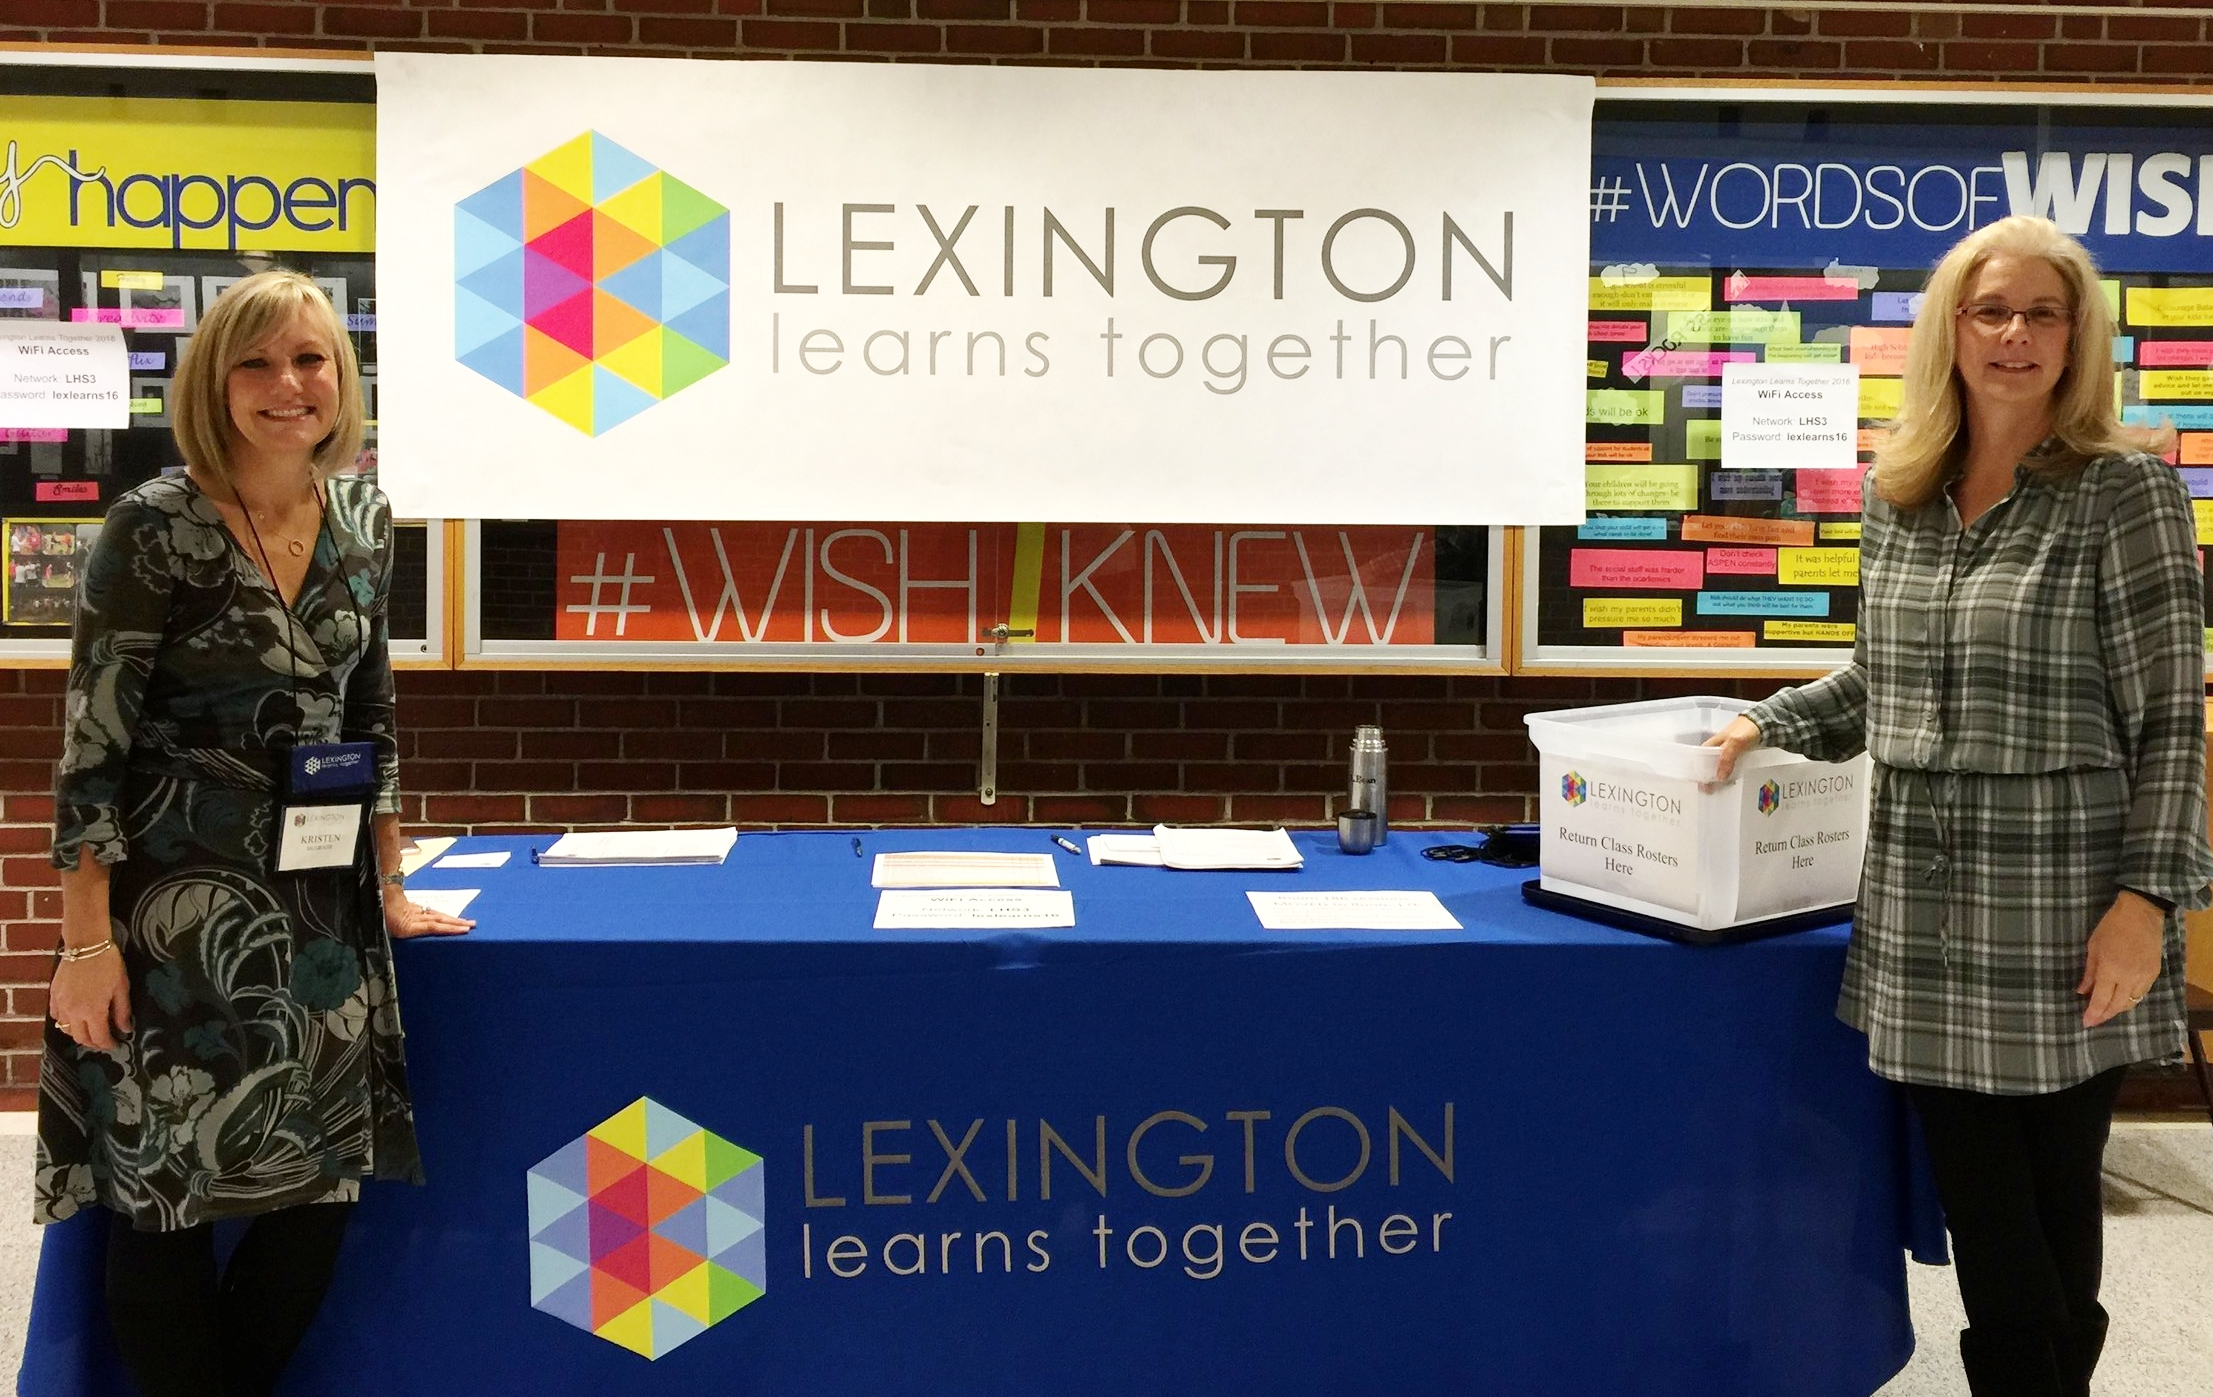 Welcoming faculty at the annual Lexington Learns Together event created to encourage staff to share their learnings and insights. Many of the faculty presenters are sharing with colleagues the knowledge and teaching approaches they developed with LEF funded grants.